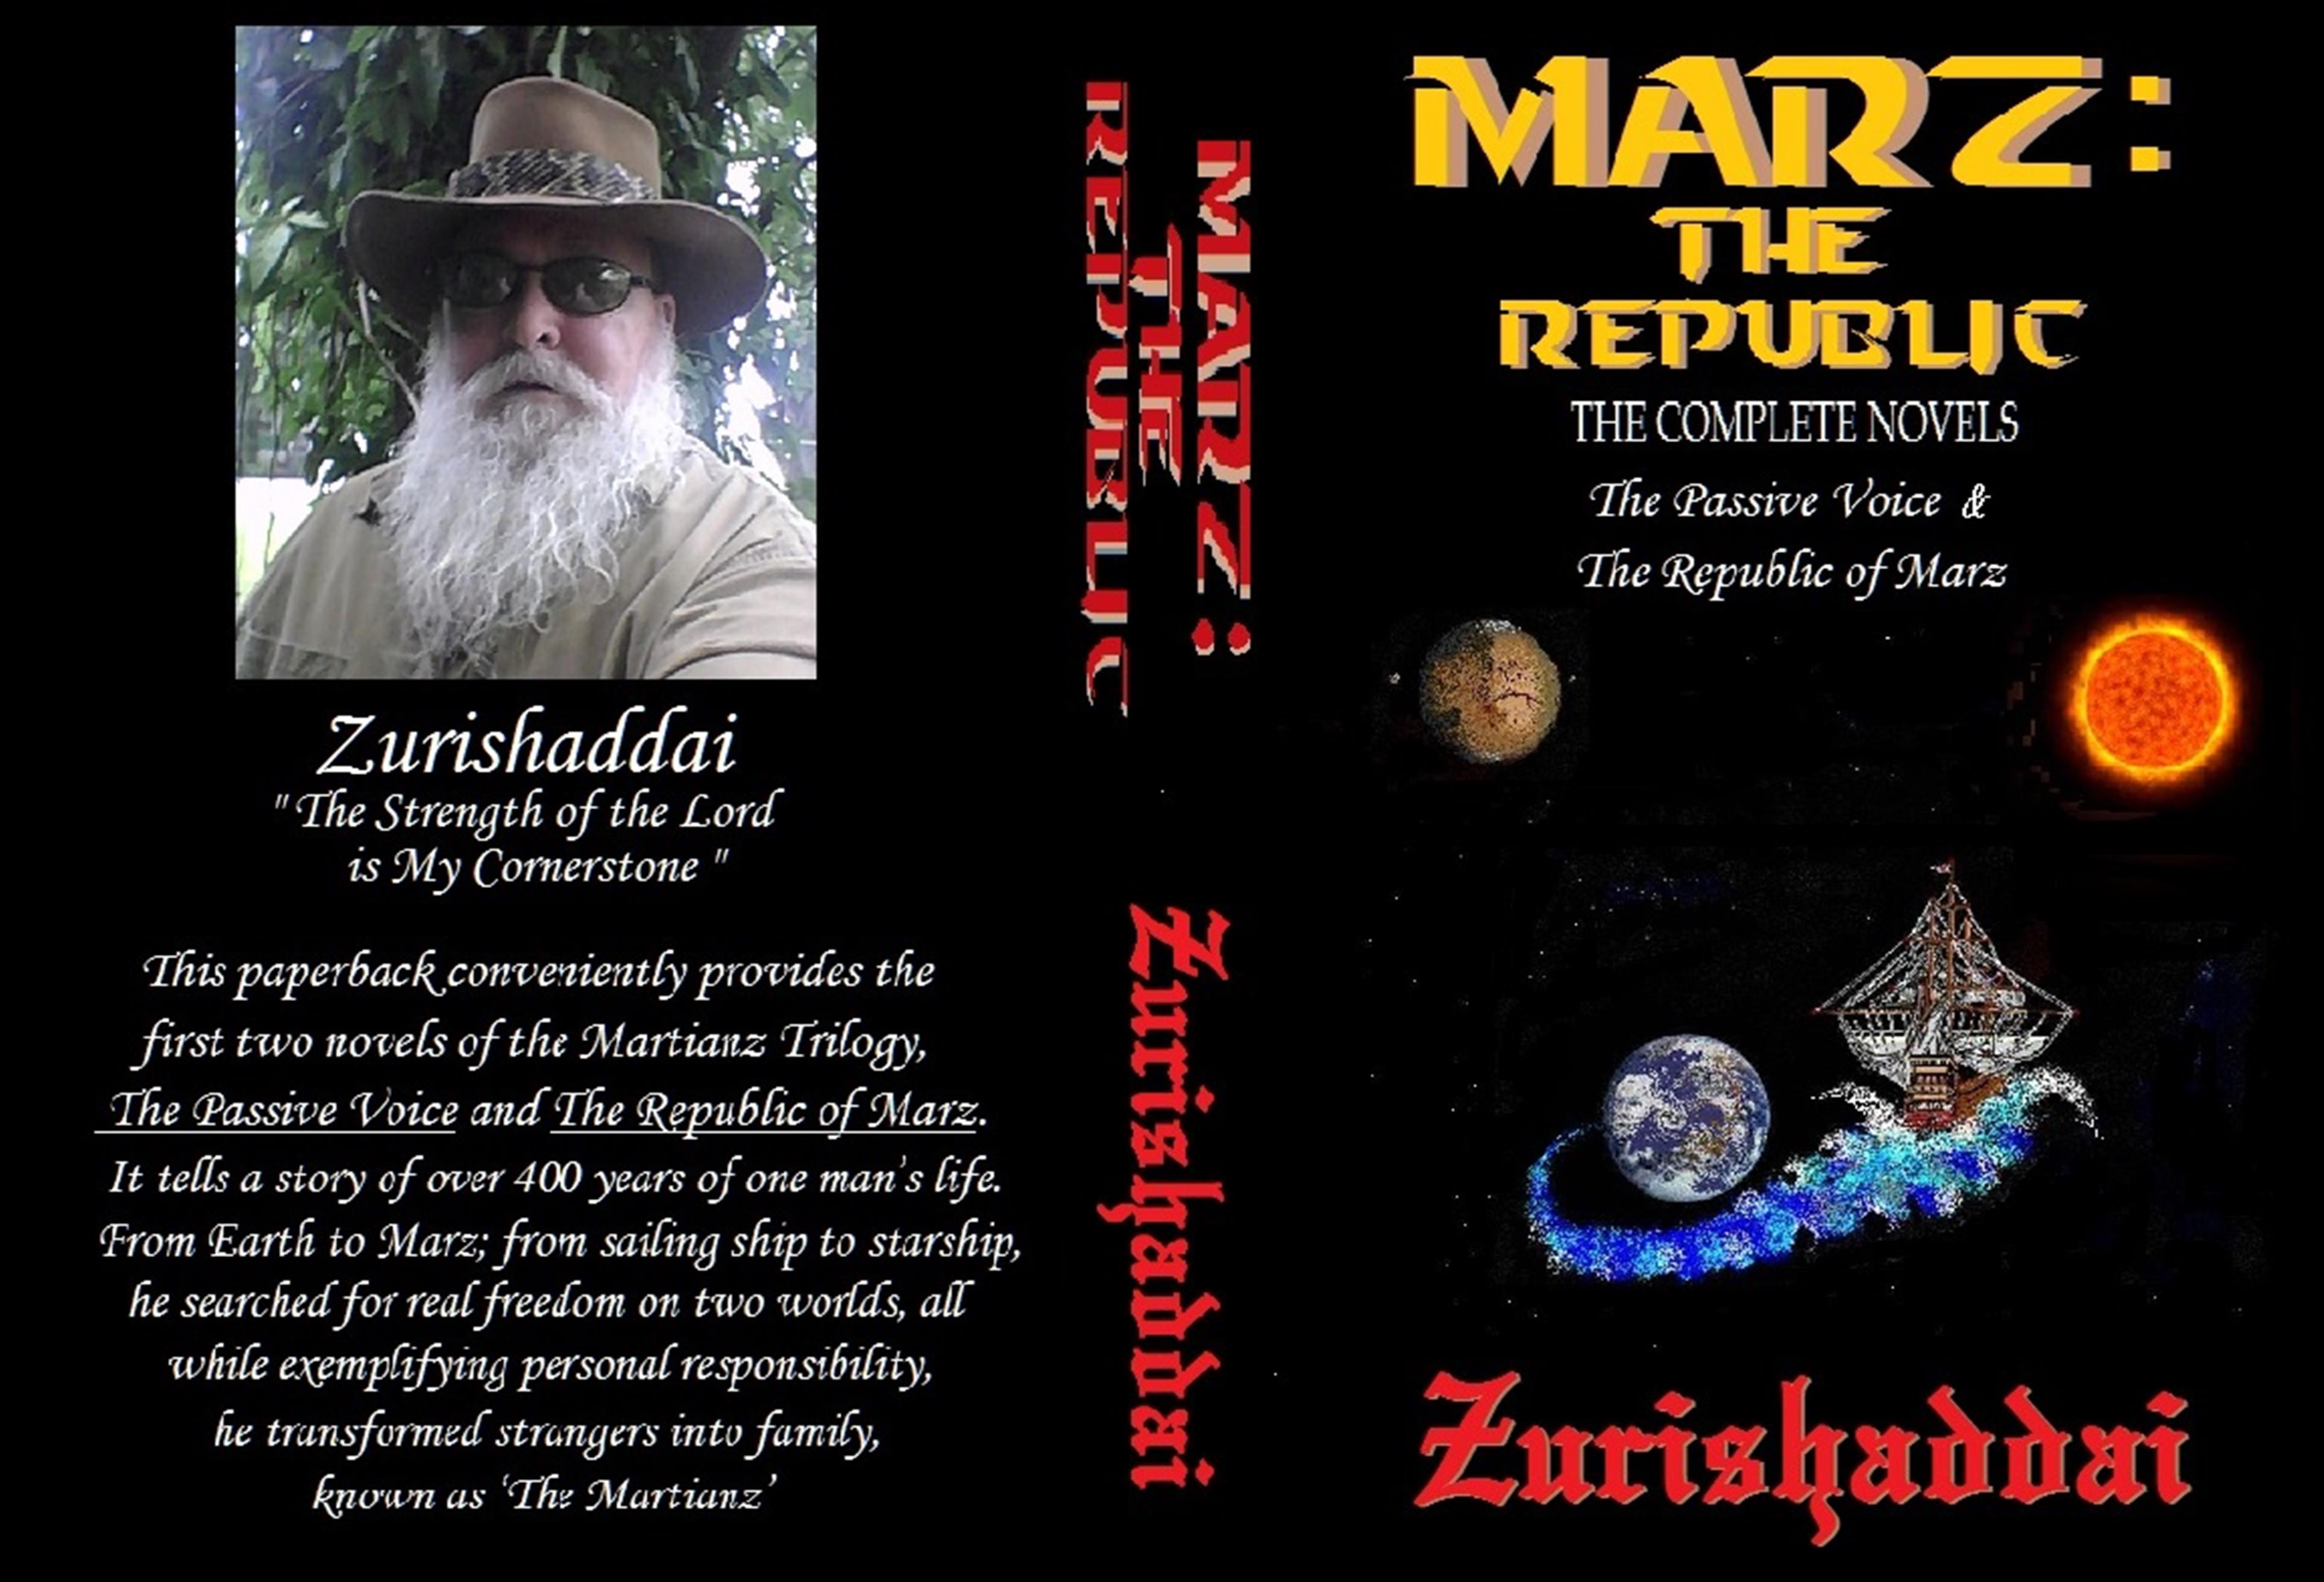 Marz: The Republic cover image